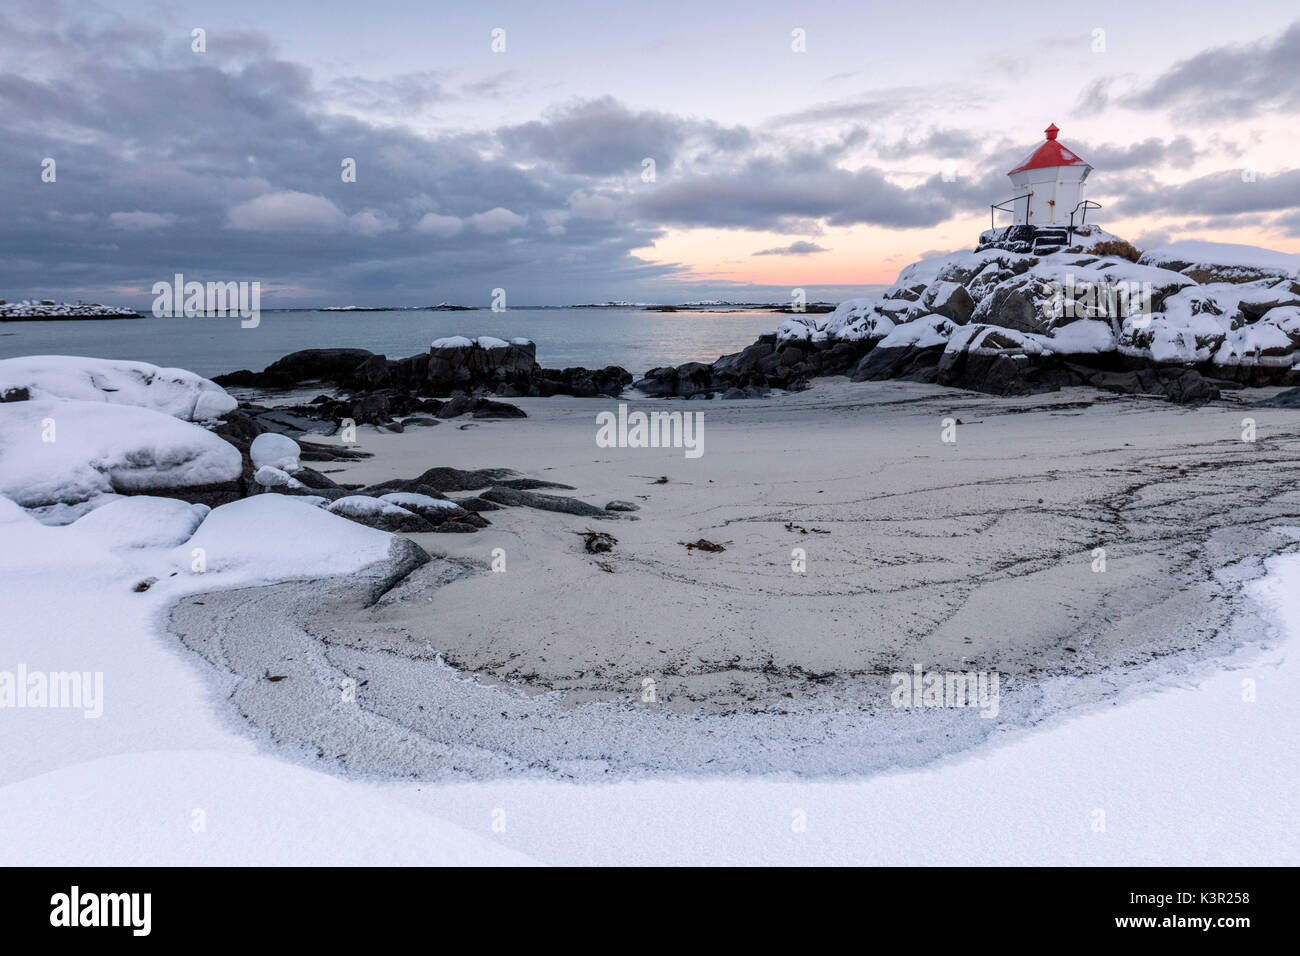 Colorful arctic sunset on the lighthouse surrounded by snow and icy sand Eggum Vestvagoy Island Lofoten Islands Norway Europe - Stock Image